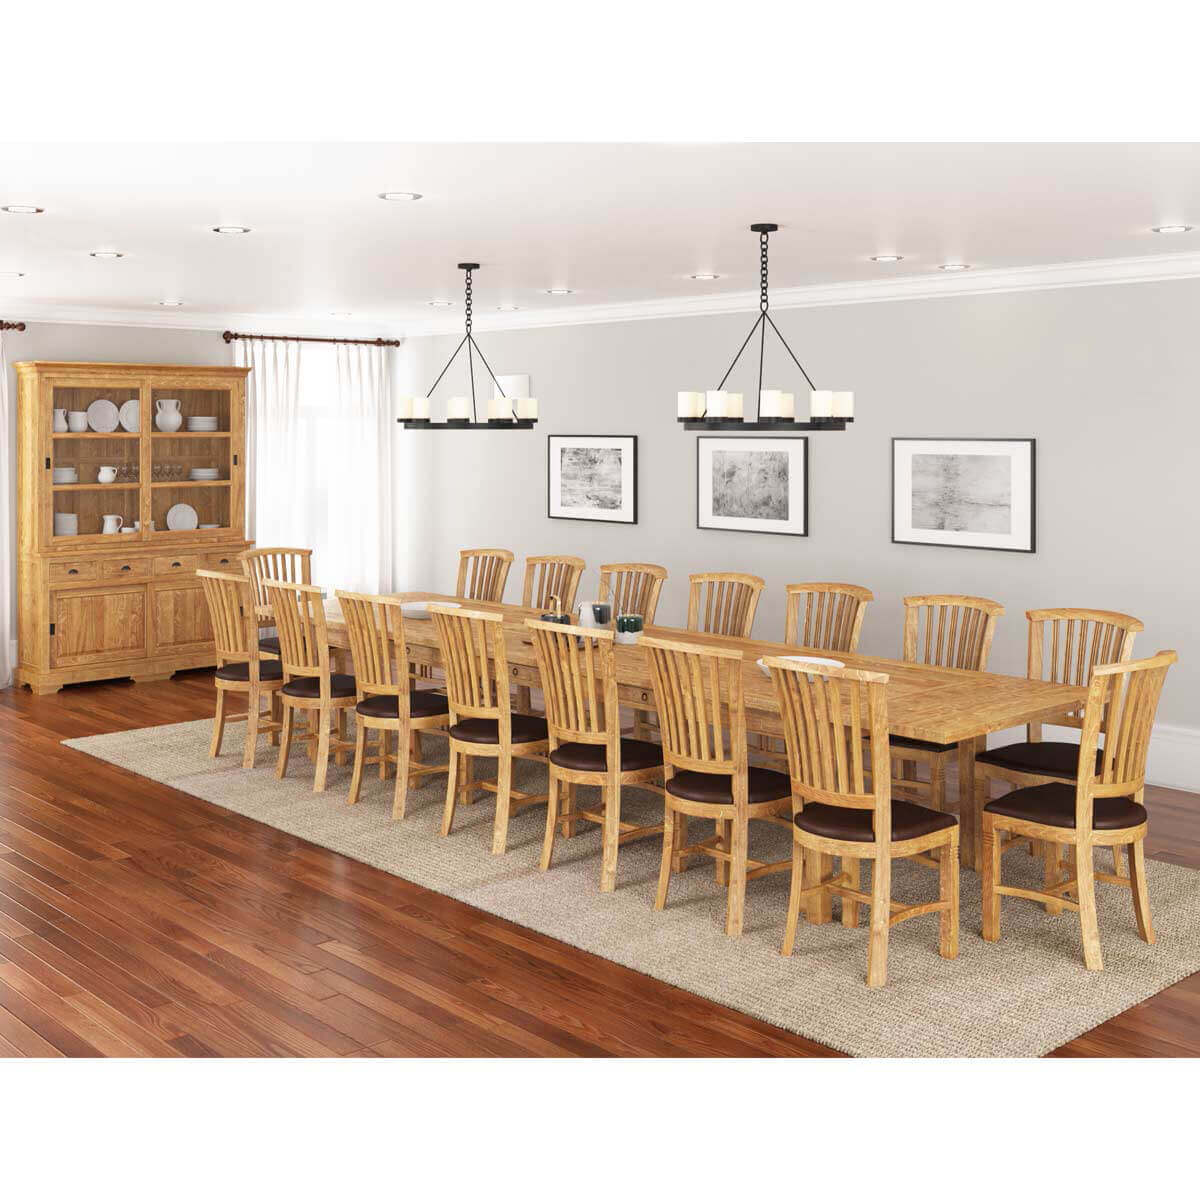 Brussels Rustic Reclaimed Teak Wood 18 Piece Dining Room Set